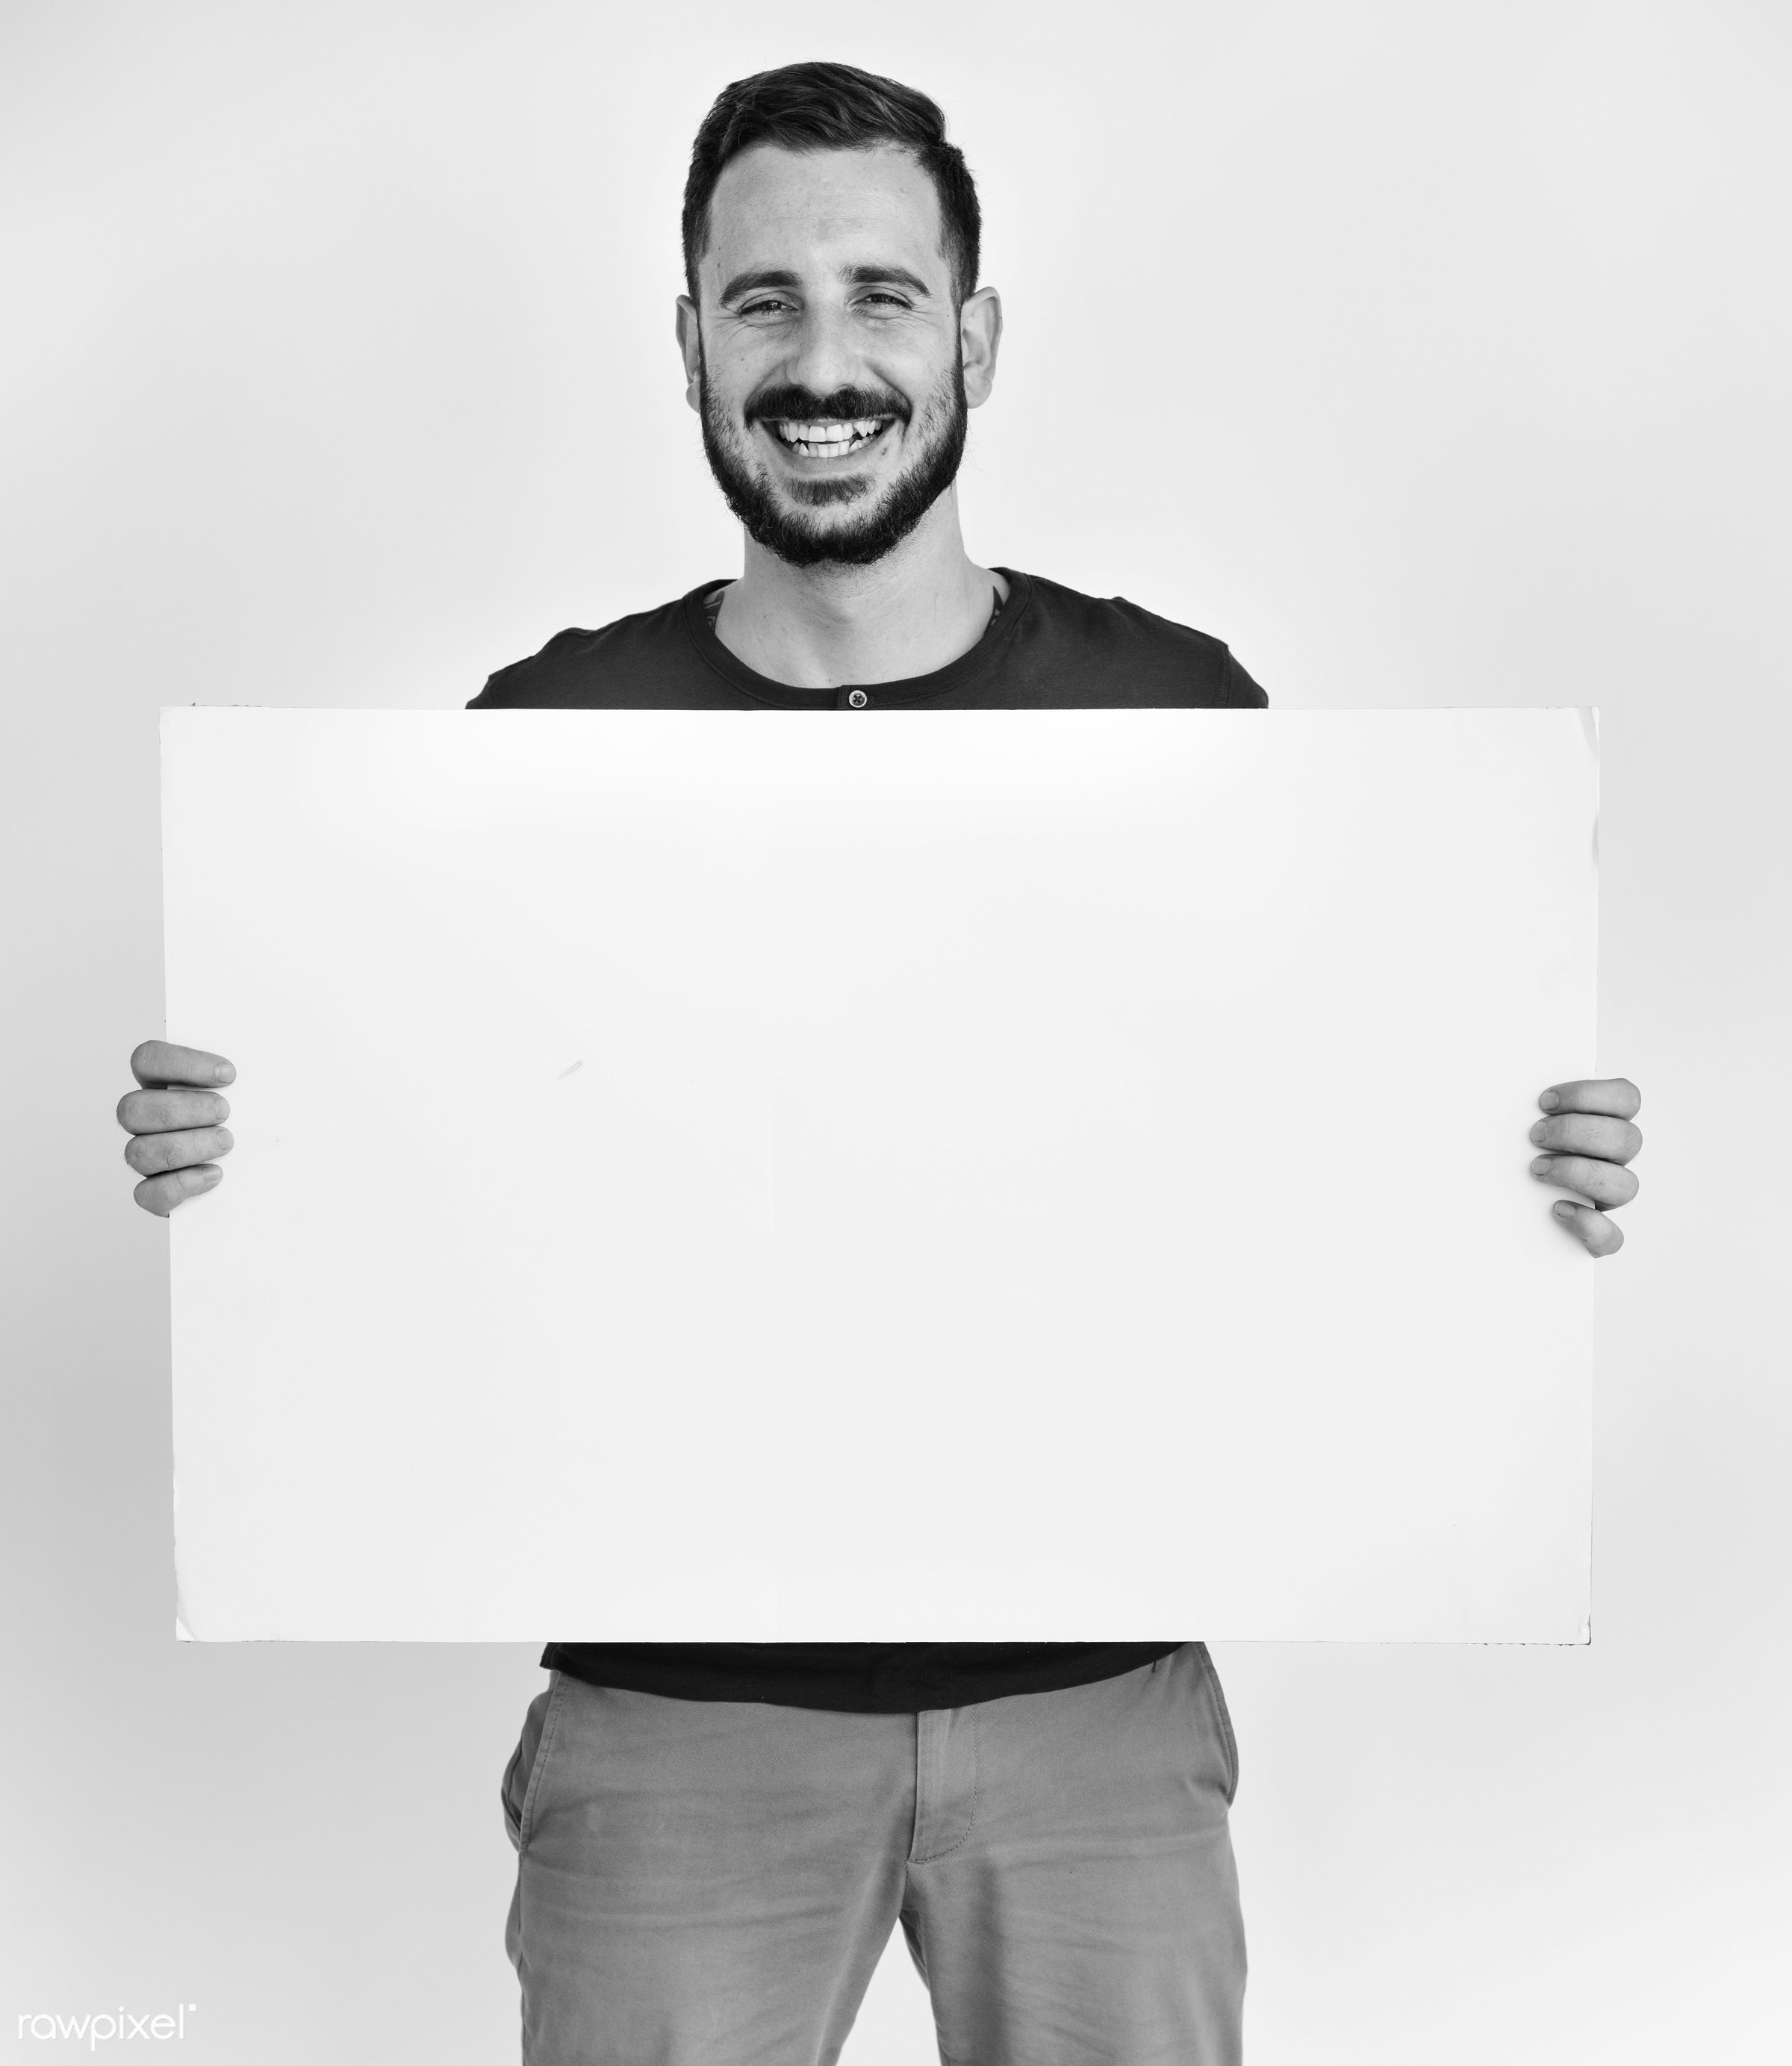 studio, person, holding, people, placard, empty, smile, cheerful, smiling, isolated, canvas, happiness, board, project,...